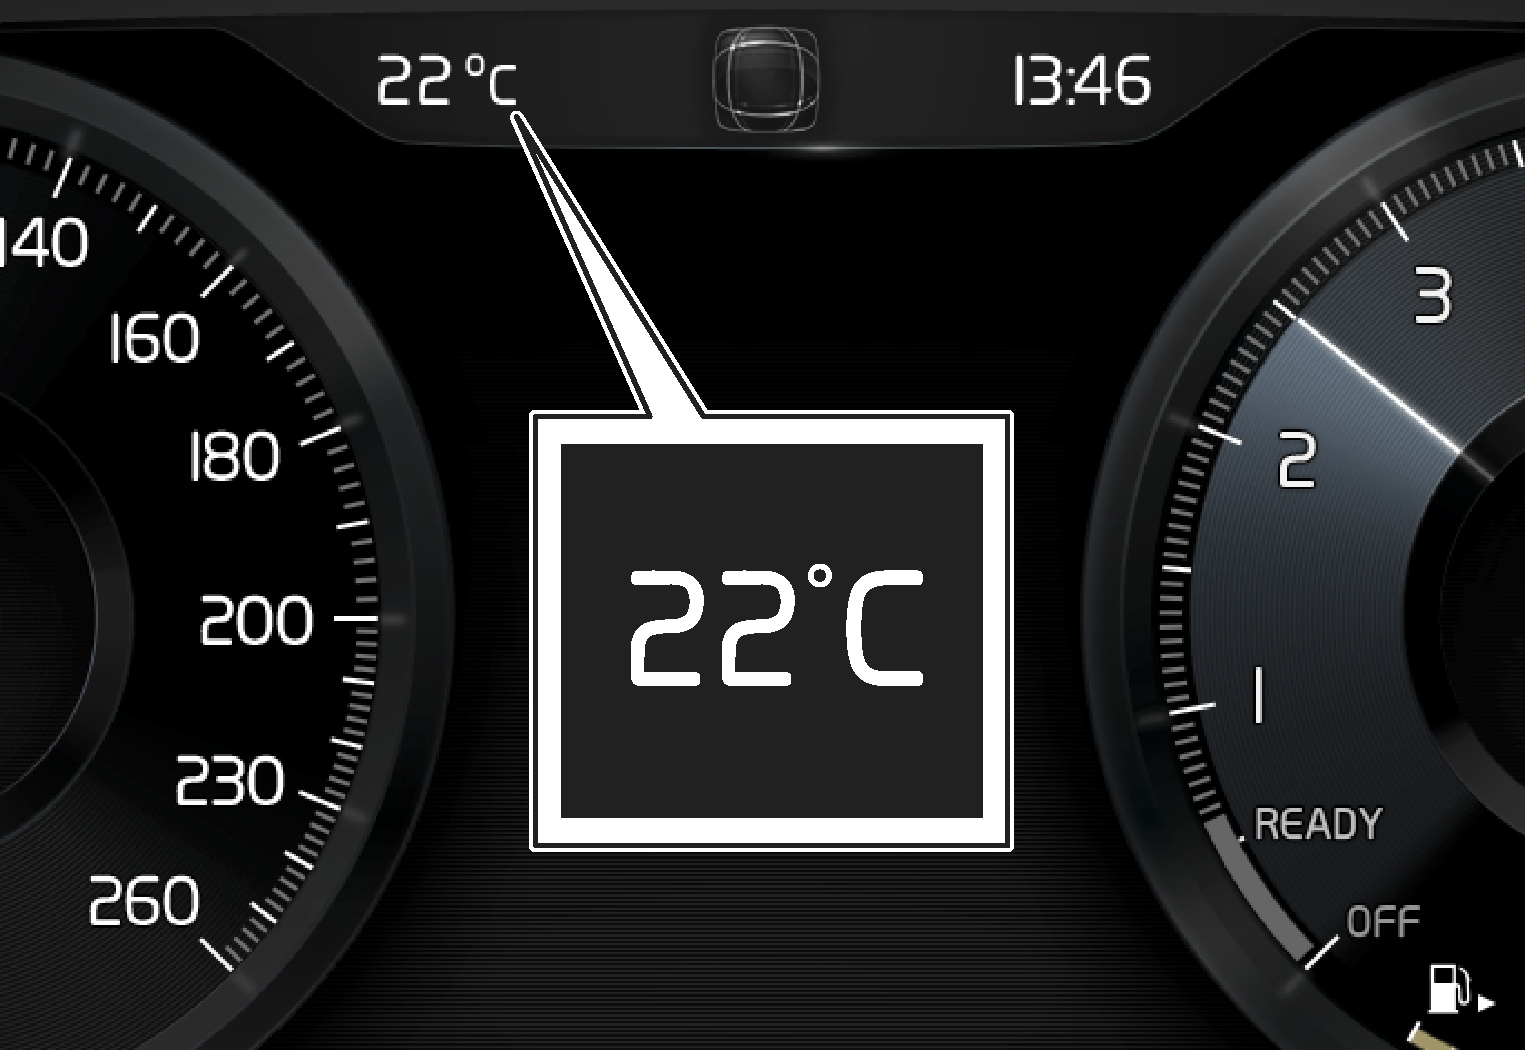 P6-XC40-1746-Outside temperature gauge 12 inch driver display